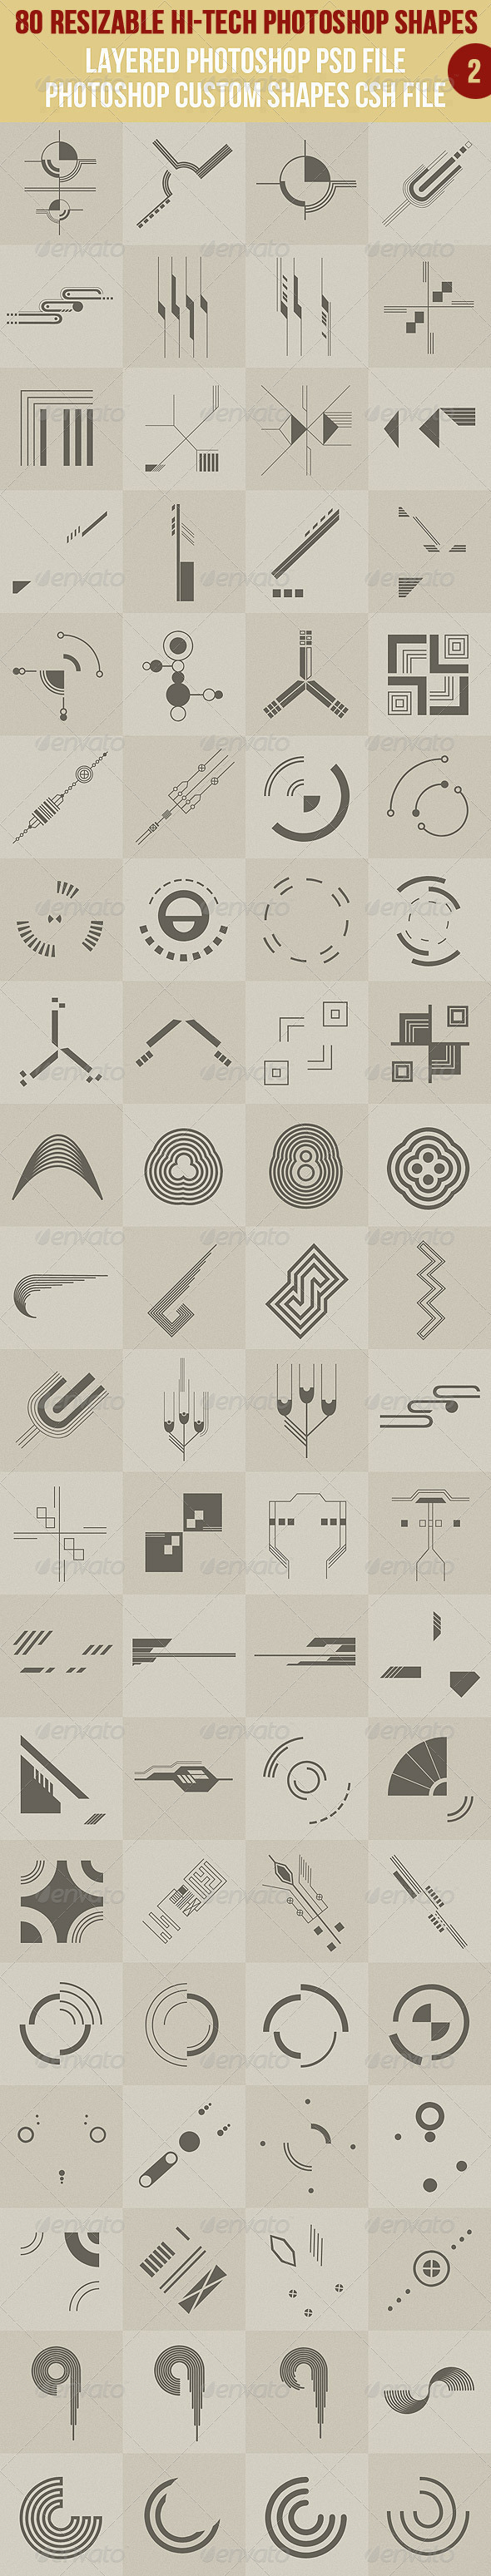 GraphicRiver 80 Photoshop Hi-Tech Shapes 2 2705822